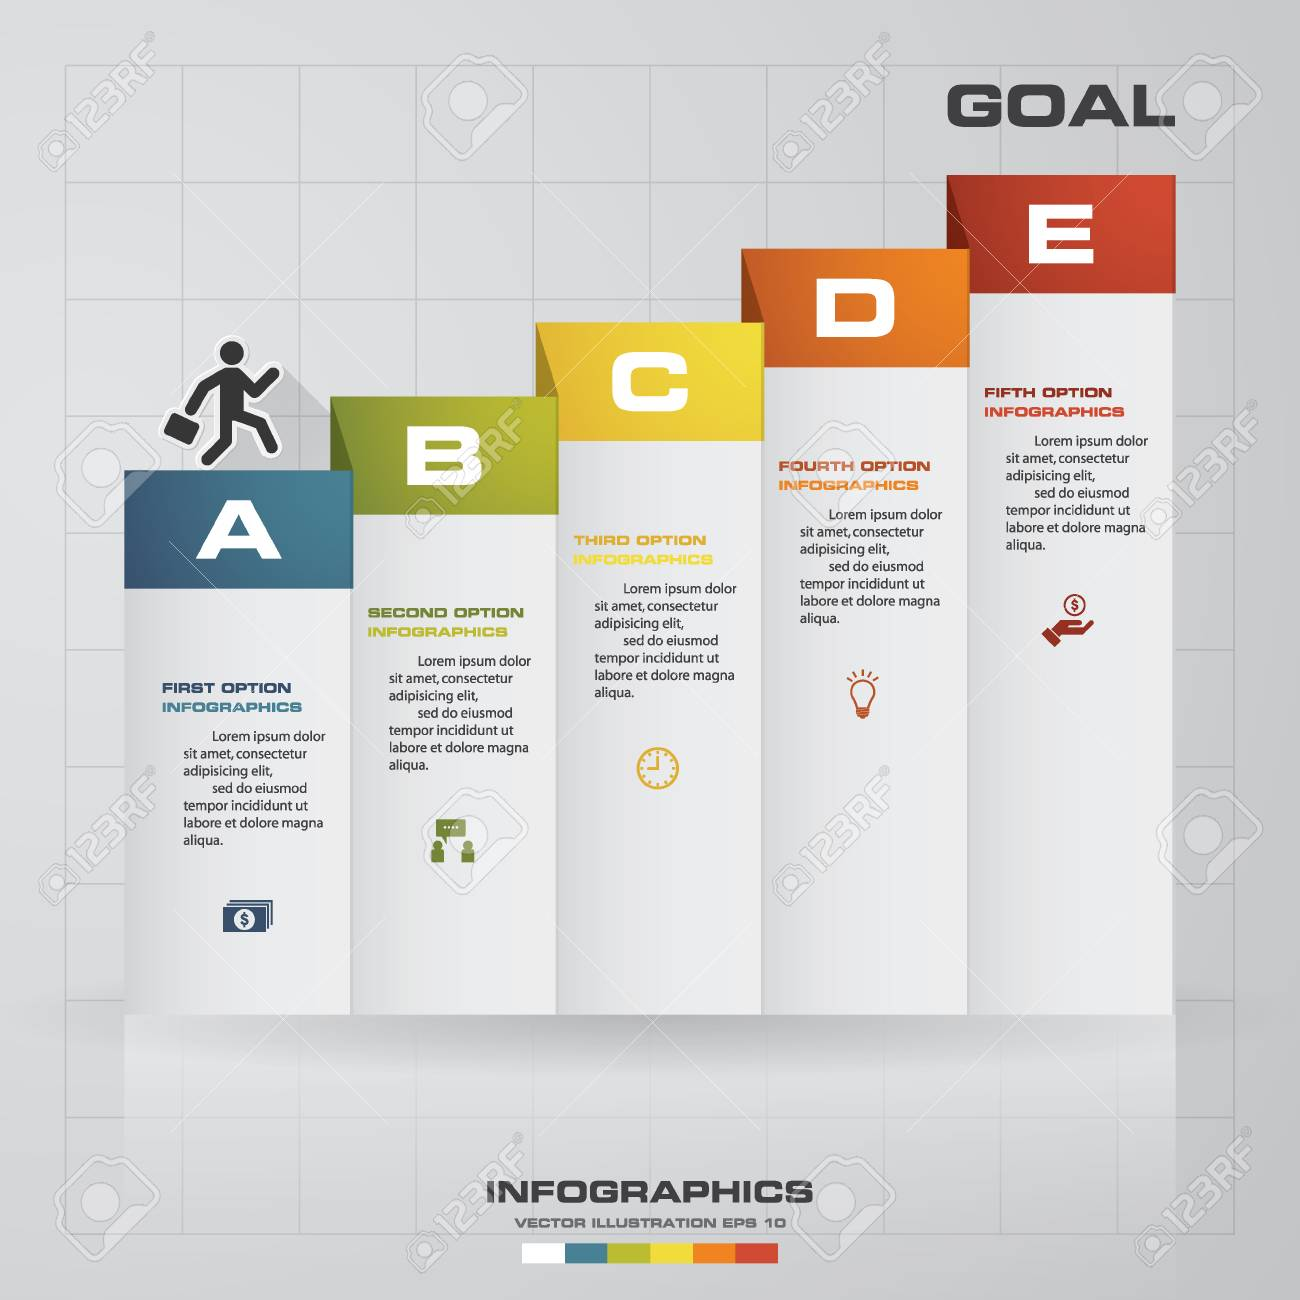 Abstract business chart 5 steps diagram templategraphic or abstract business chart 5 steps diagram templategraphic or website layout vector ccuart Choice Image